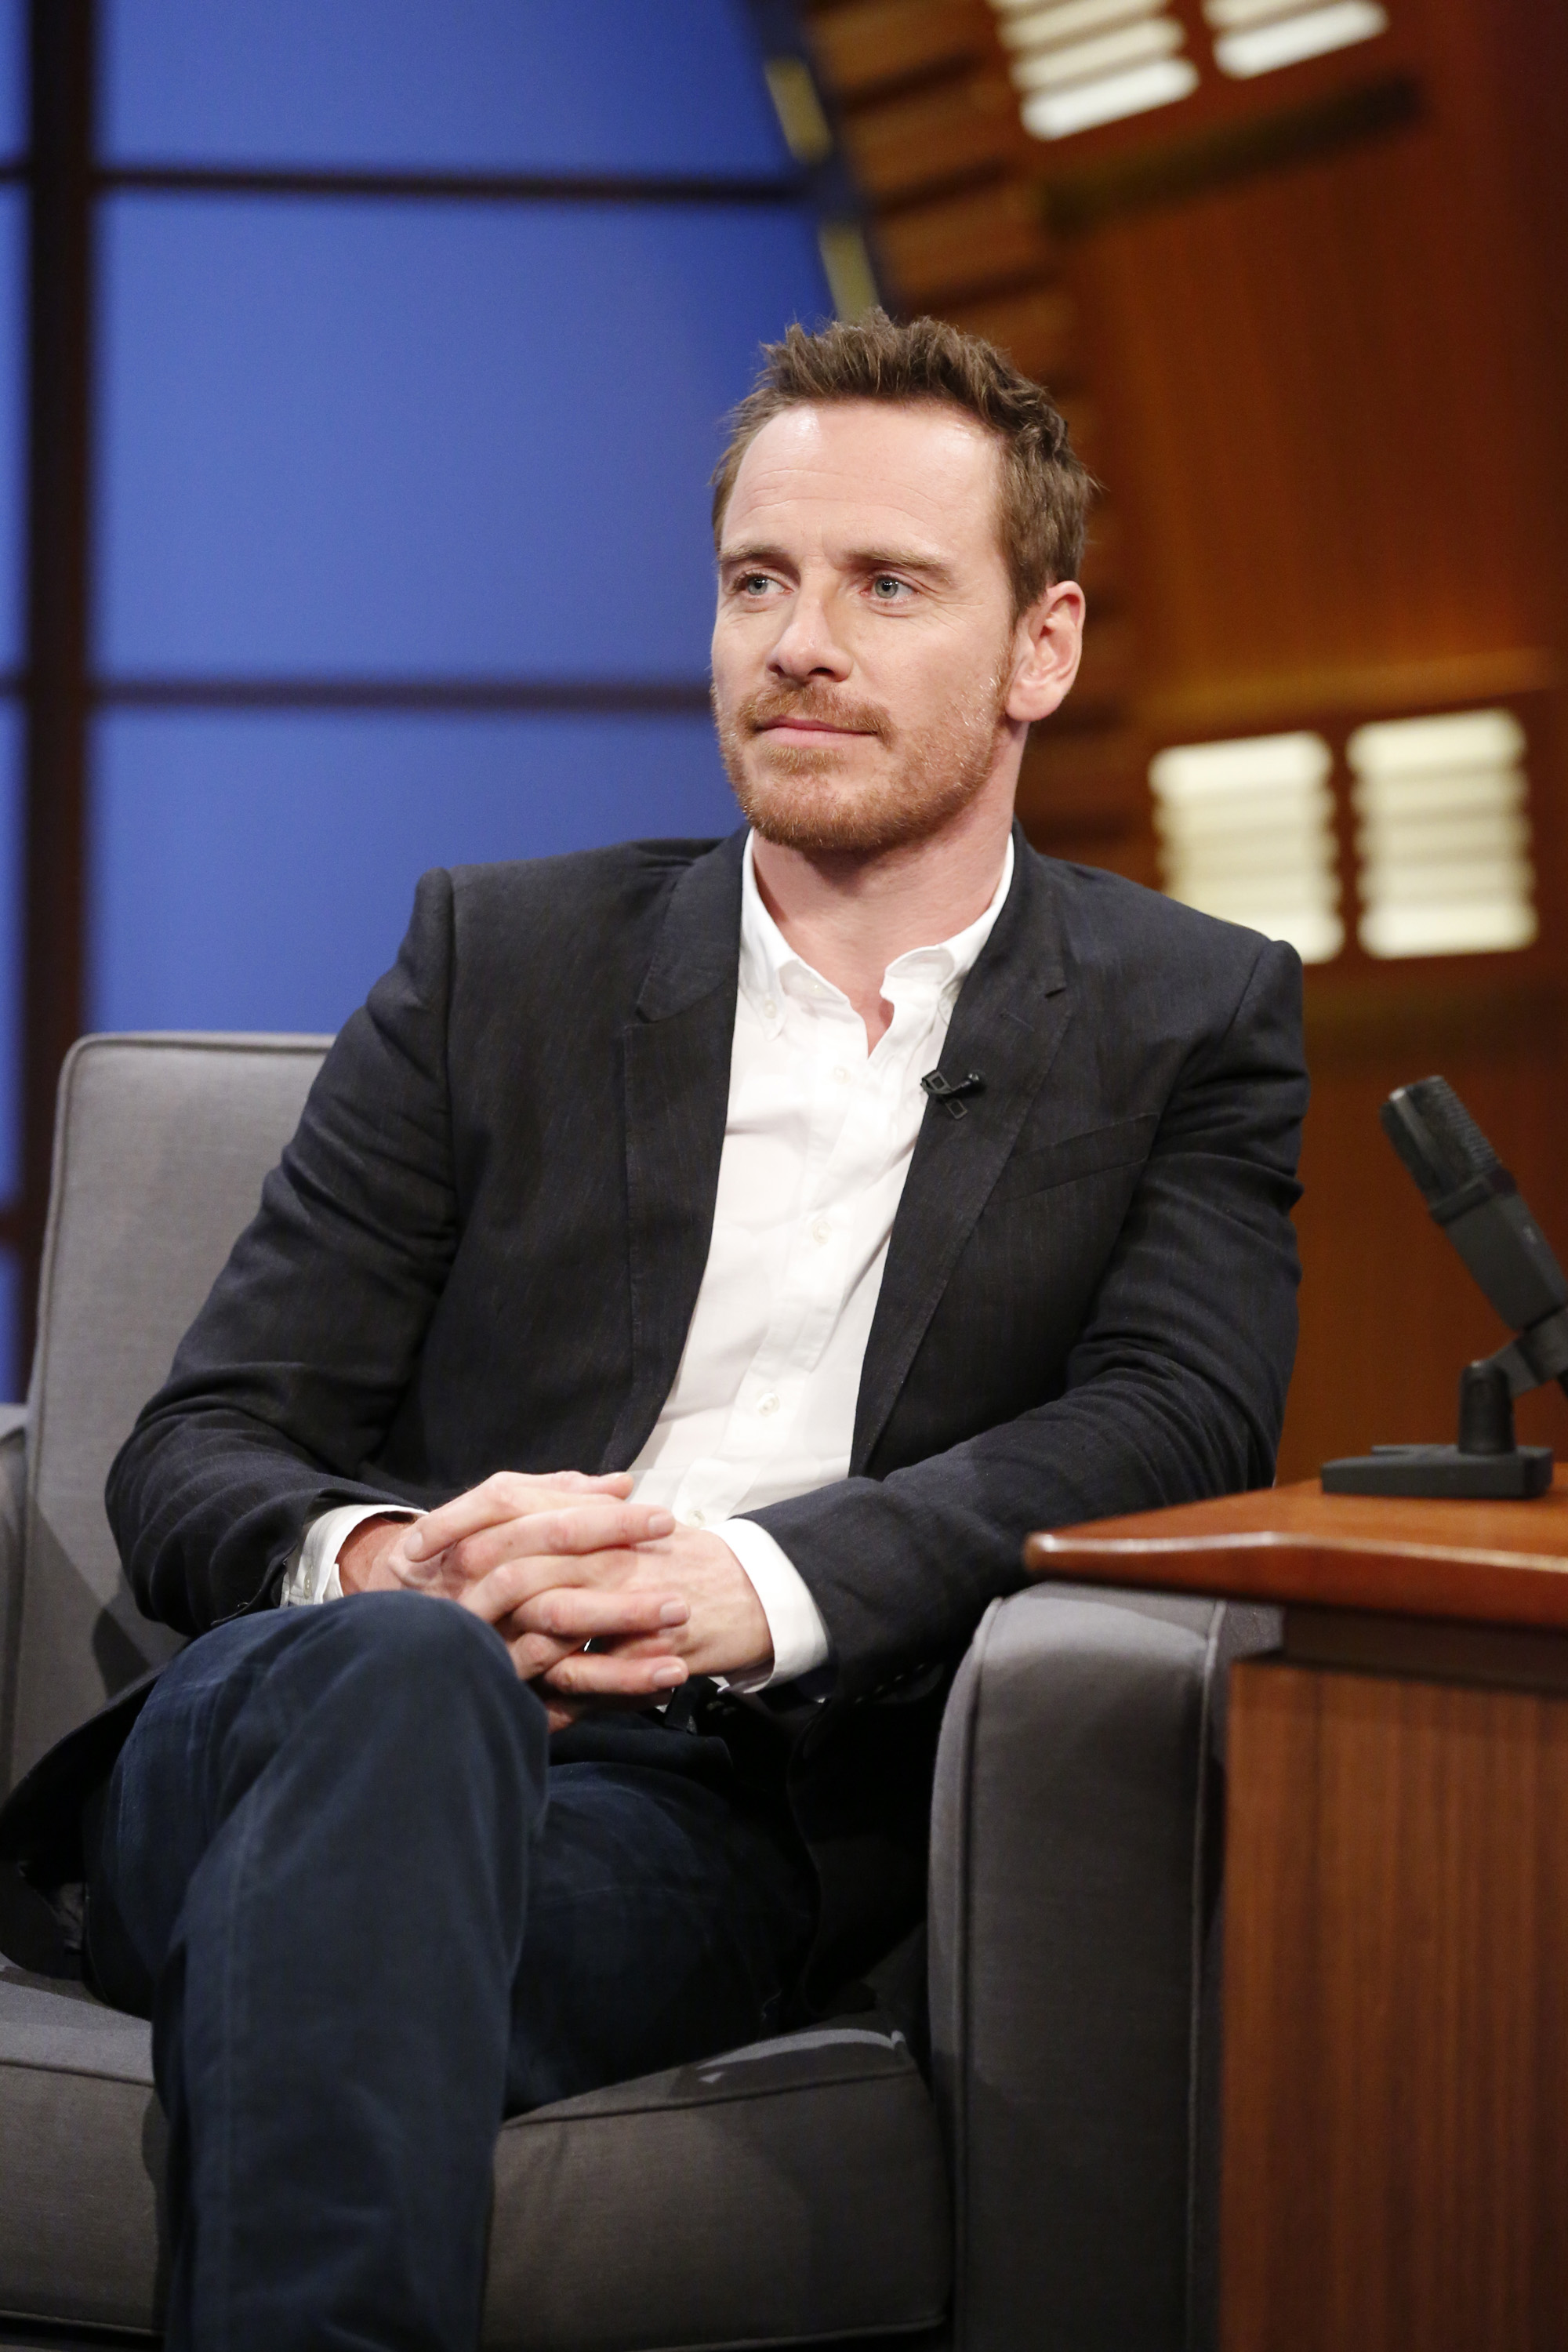 Actor Michael Fassbender during an interview on August 7, 2014